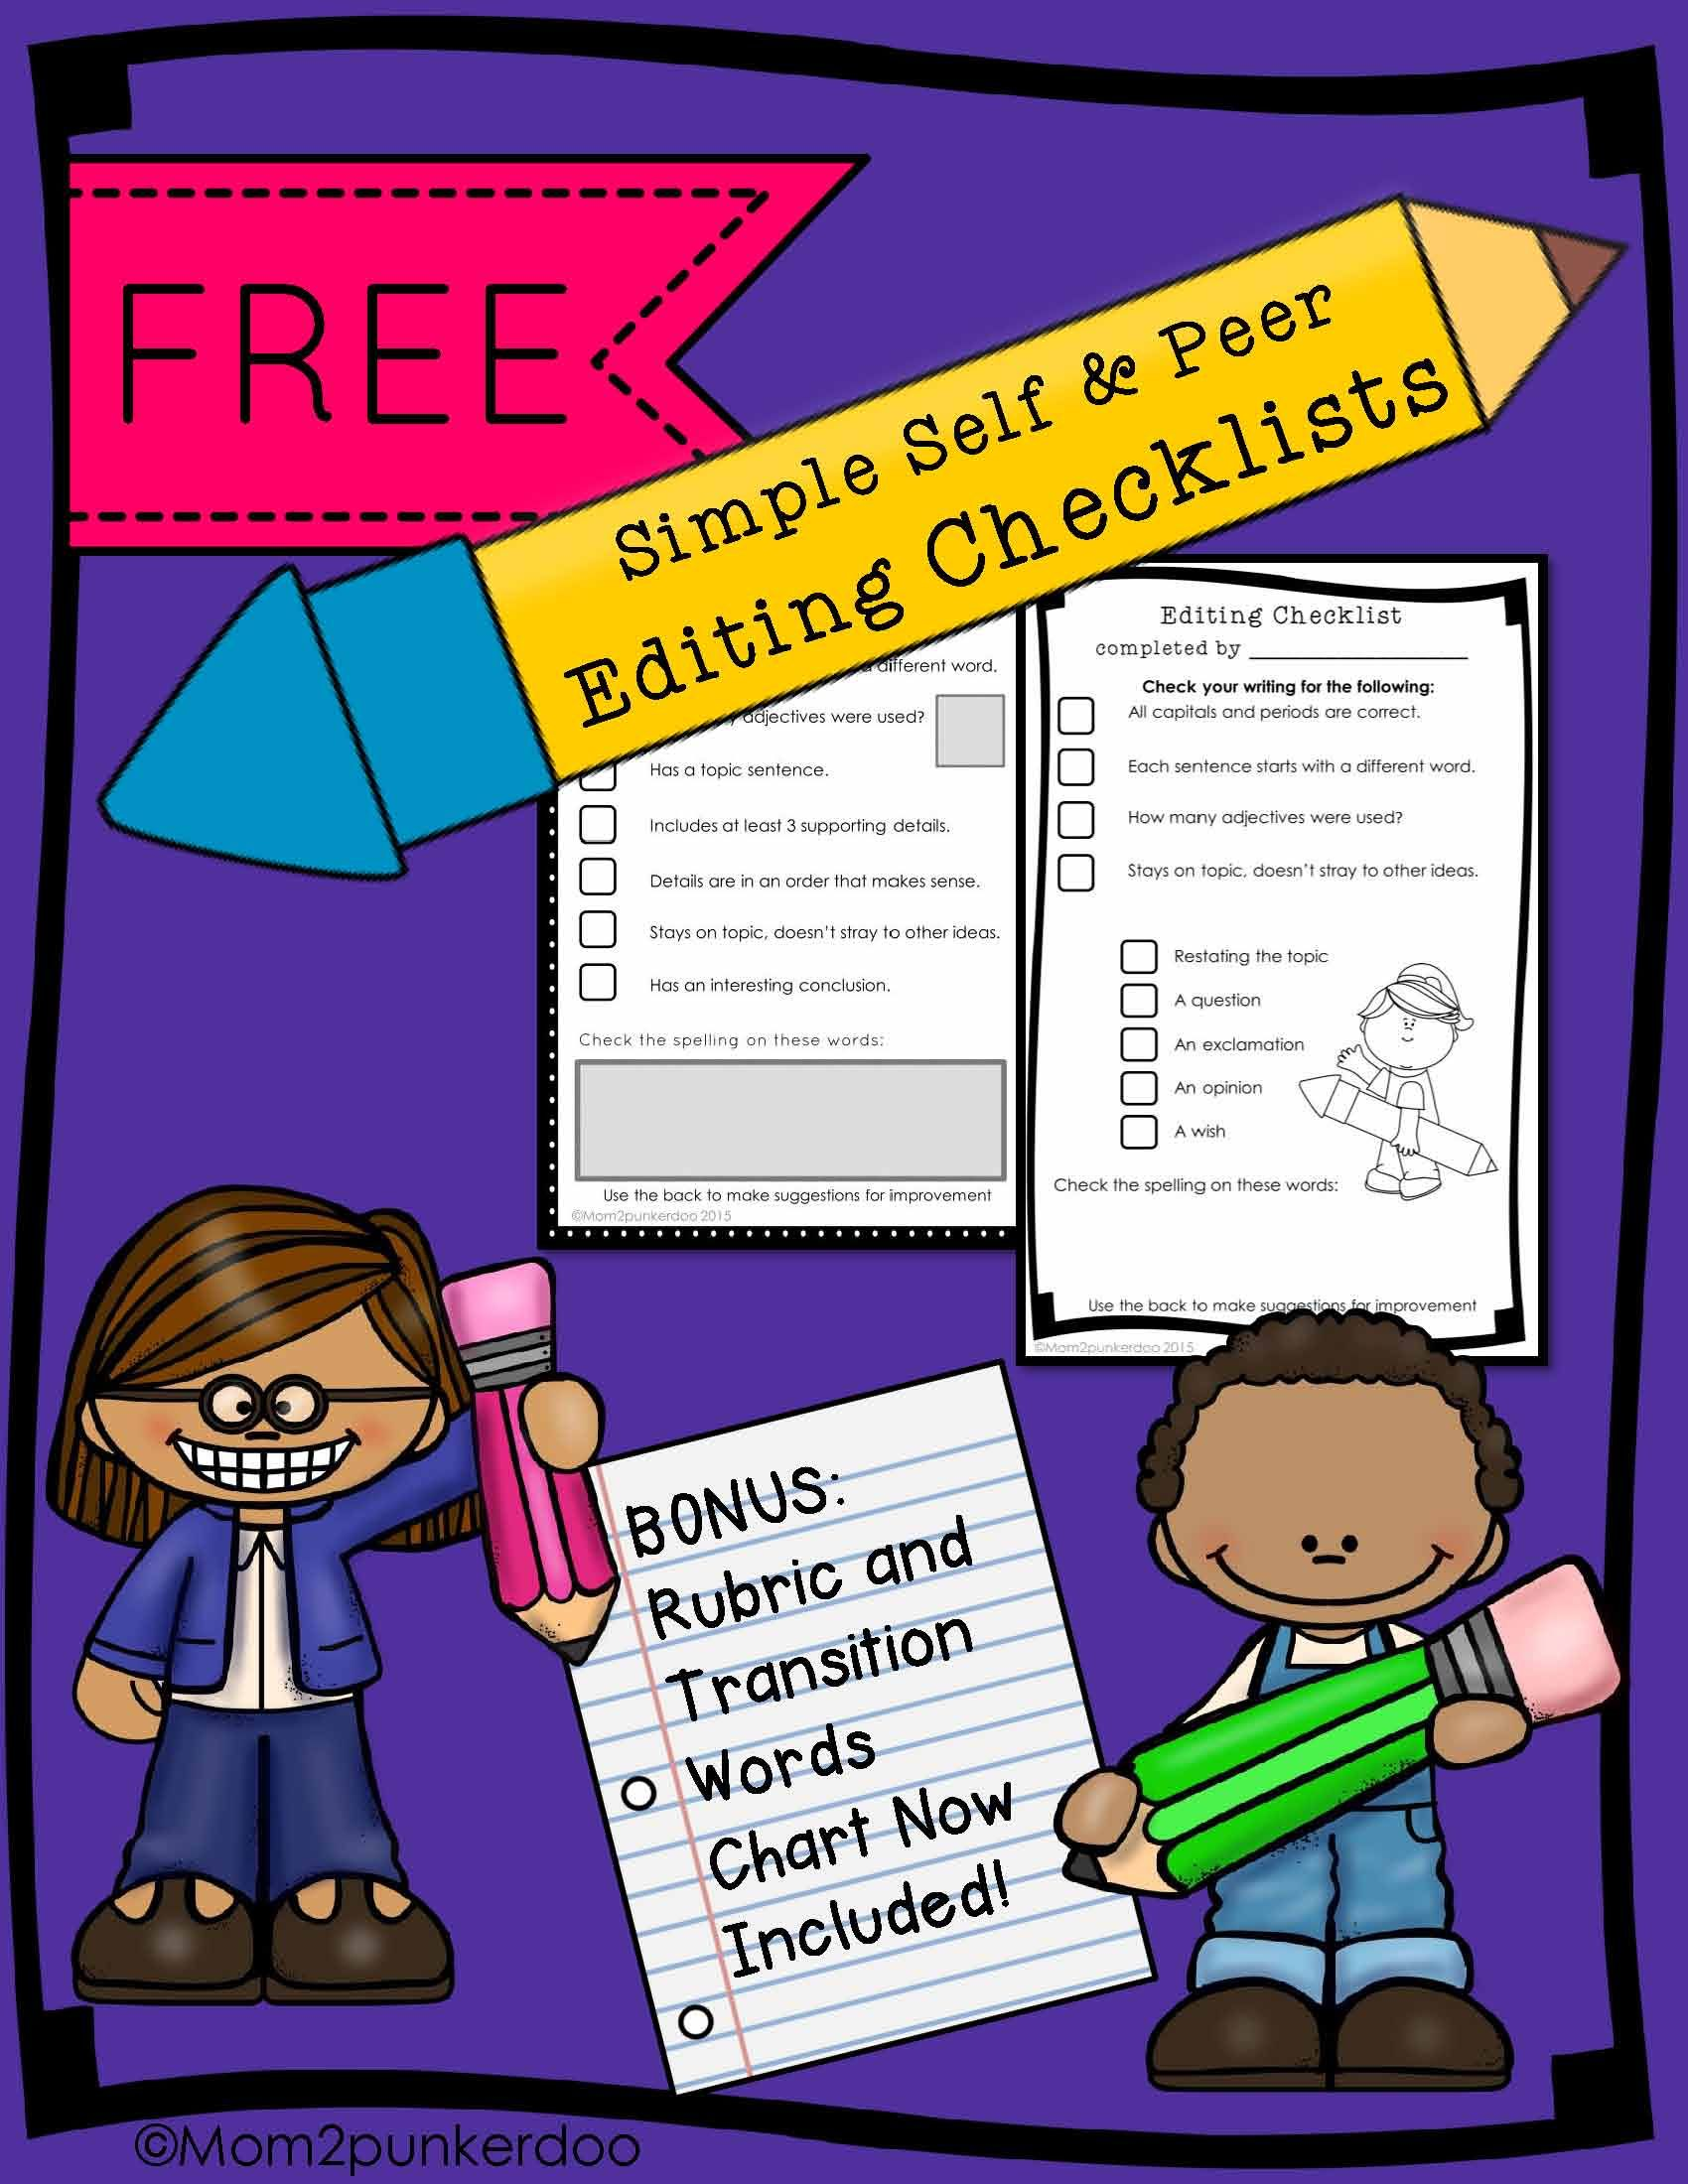 Tools For Writers Peer Editing Checklist Feedback Rubric Reference List